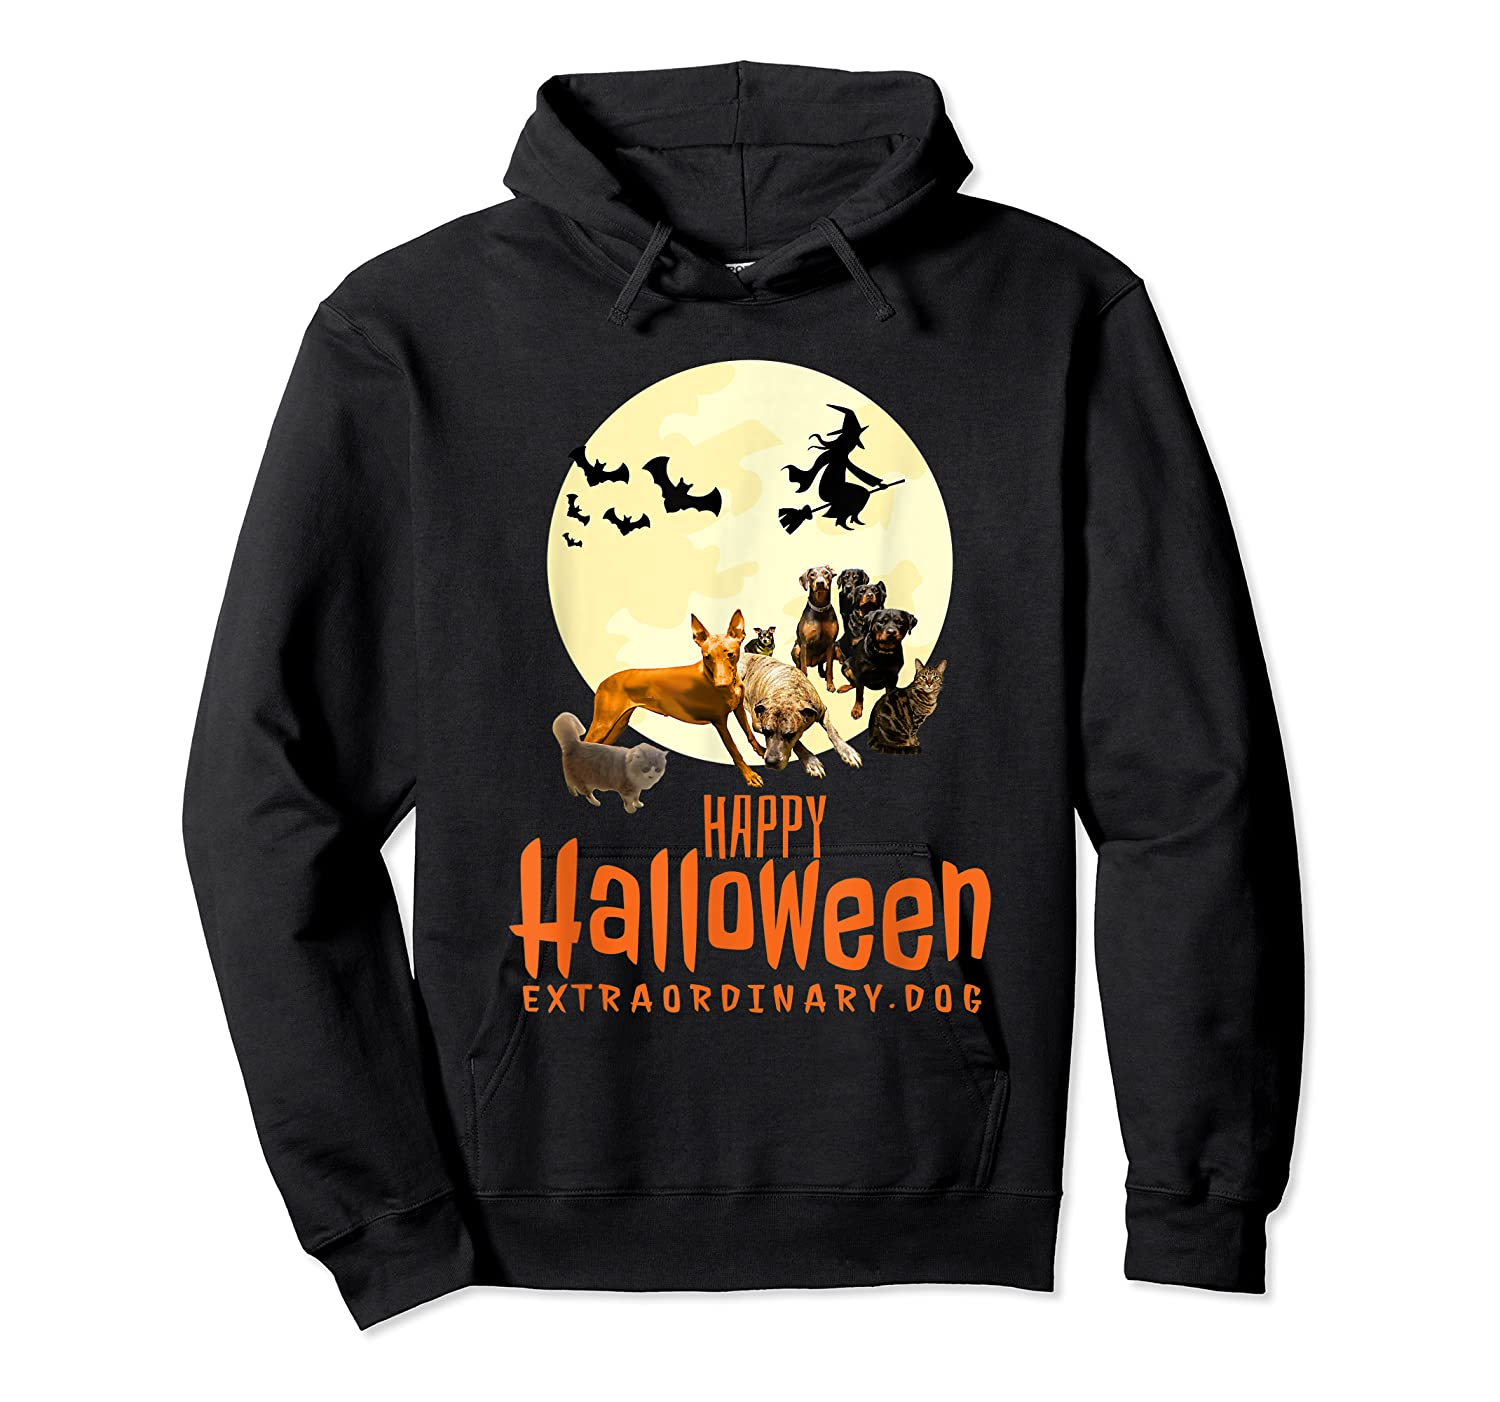 Happy Halloween With Extraordinary Dogs And Cats T Shirt Unisex Pullover Hoodie